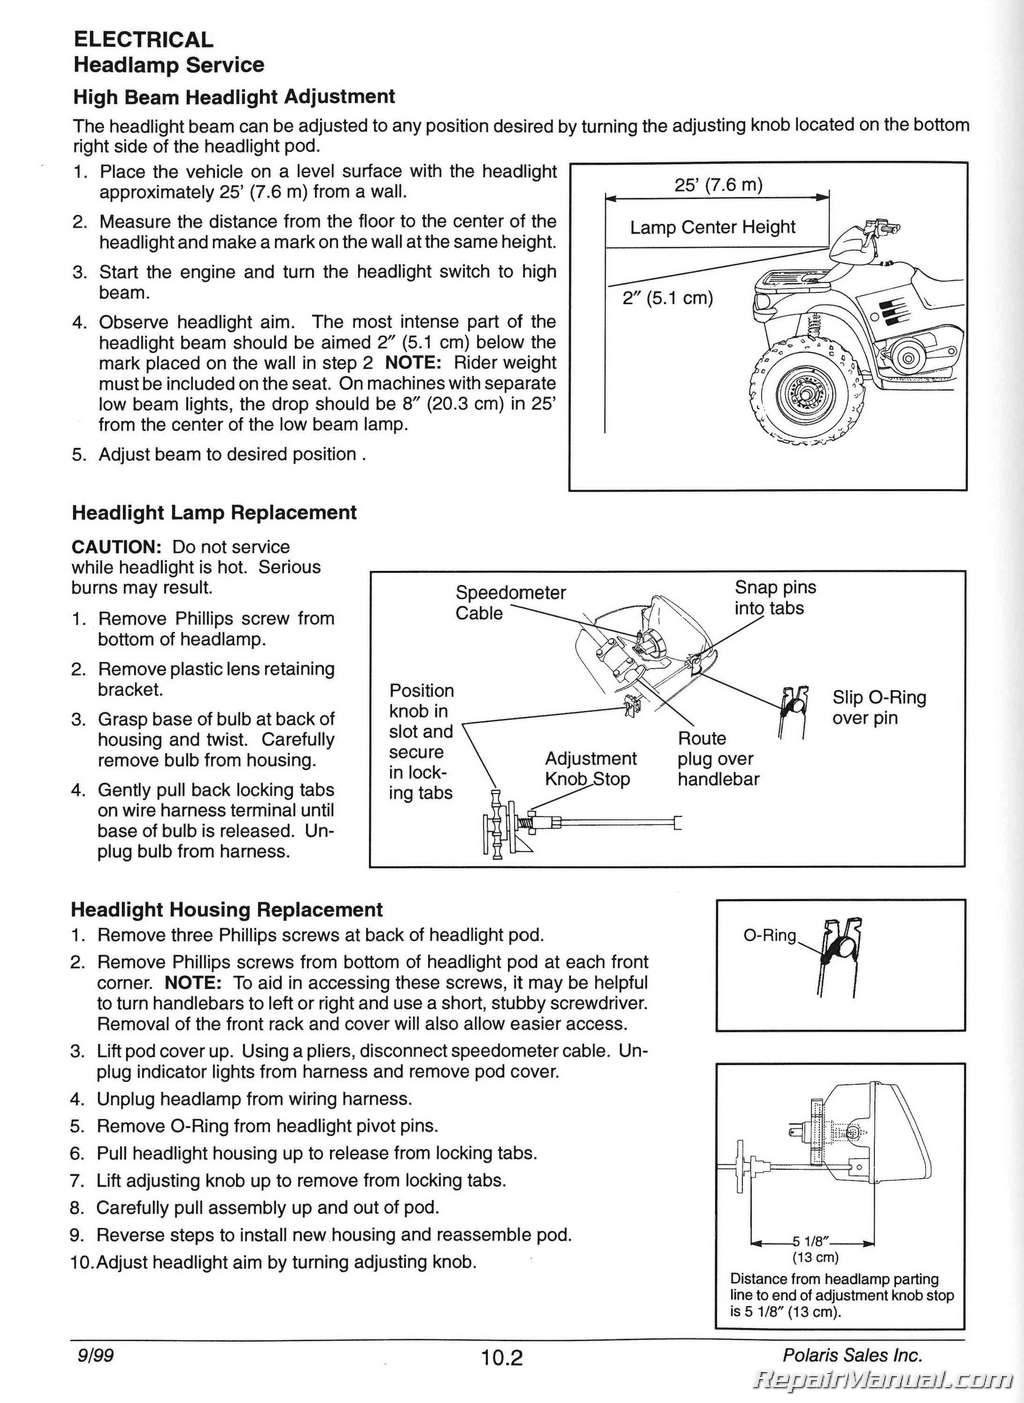 Polaris Magnum 325 Atv Wiring Diagrams Guide And Troubleshooting 96 425 Diagram Schematics For 2000 Sportsman Simple Rh 79 Mara Cujas De 2001 Carburetor